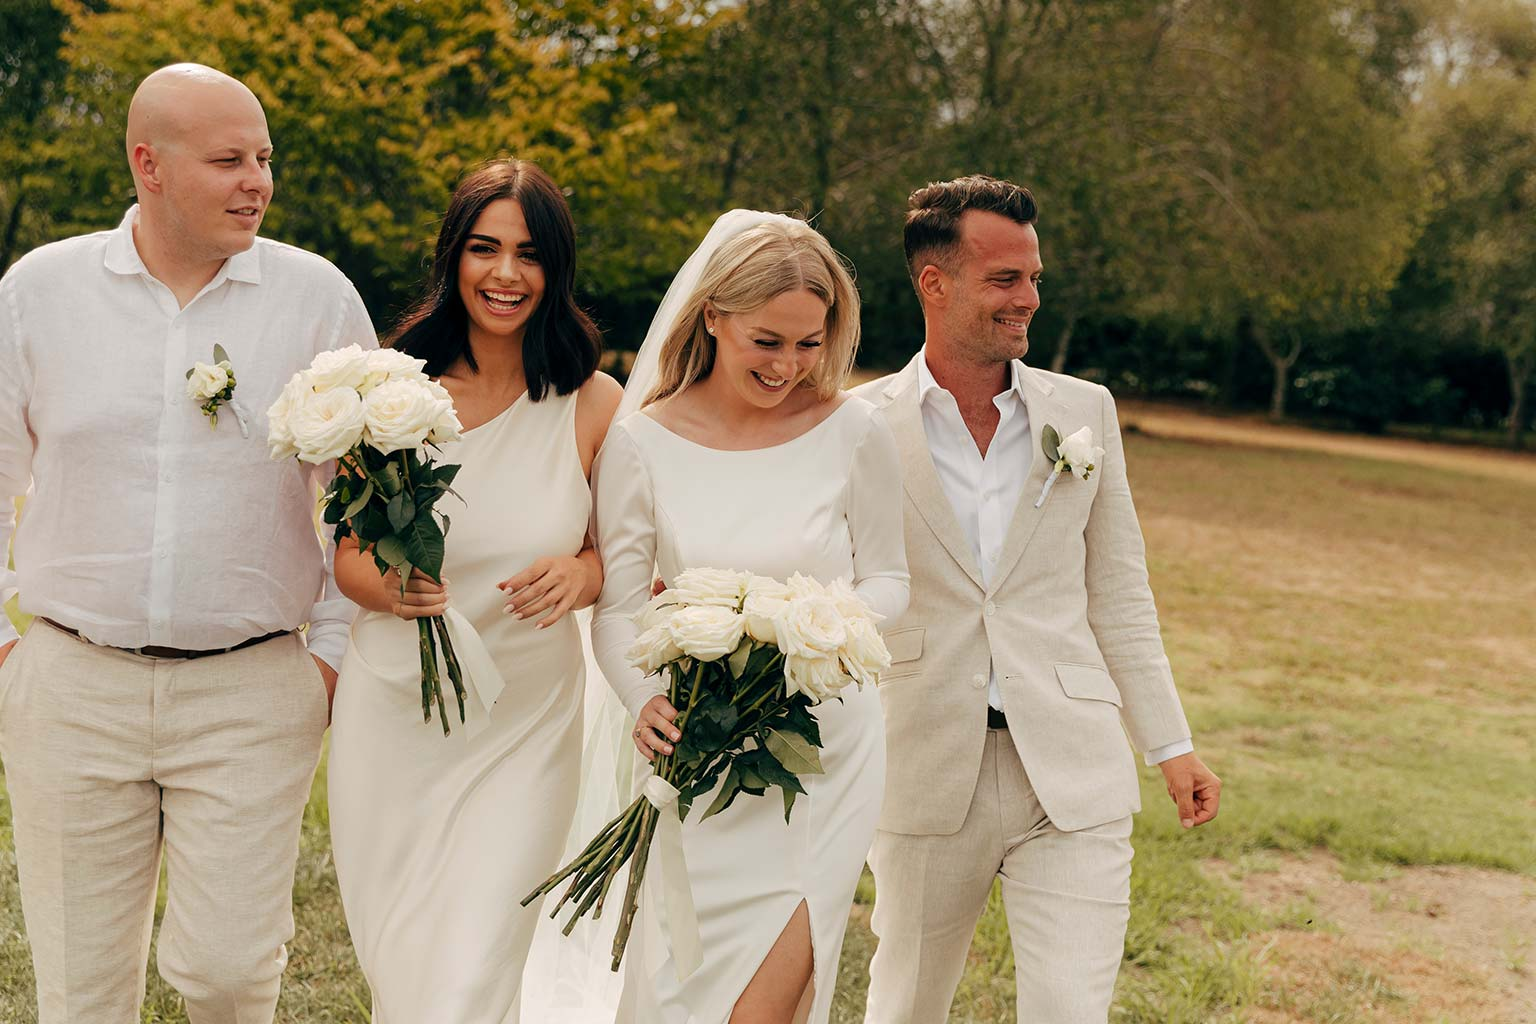 Vinka Design Bridal Wear features Real Wedding Matt and Emilia - bride with bridesmaid and groom, bride wearing bespoke Audrey gown from Modern Muse Collection